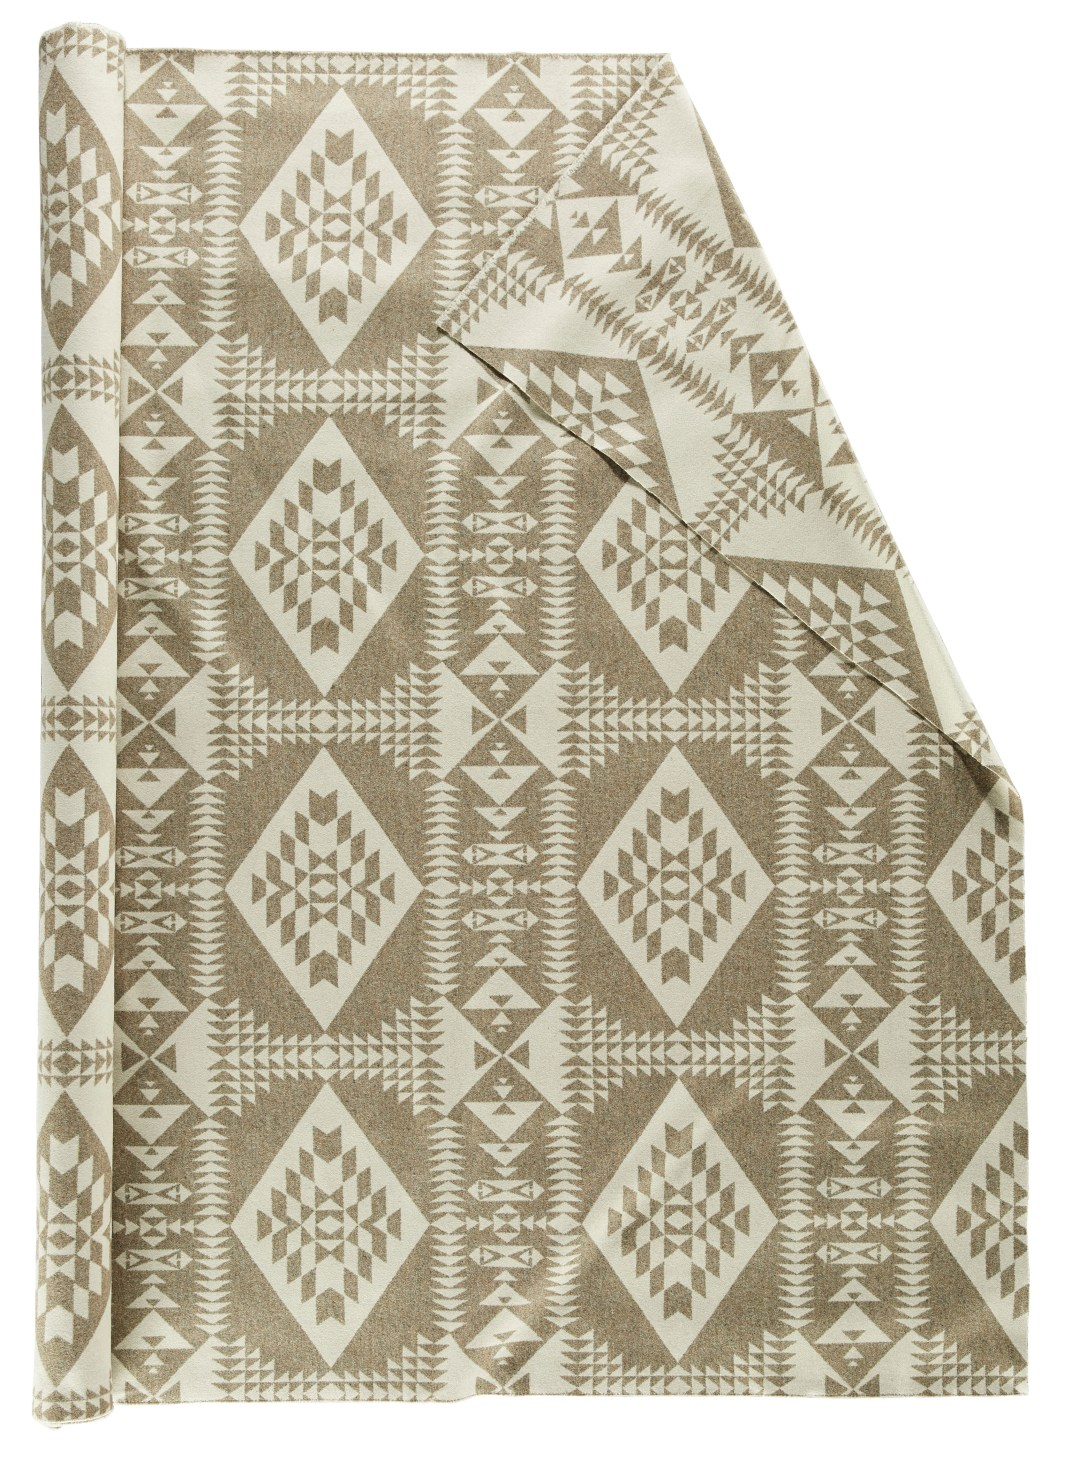 Roll of pendleton wool fabric in Basket maker Tonal, a pattern of off white and tan in diamond shaped and pillars made of arrows.